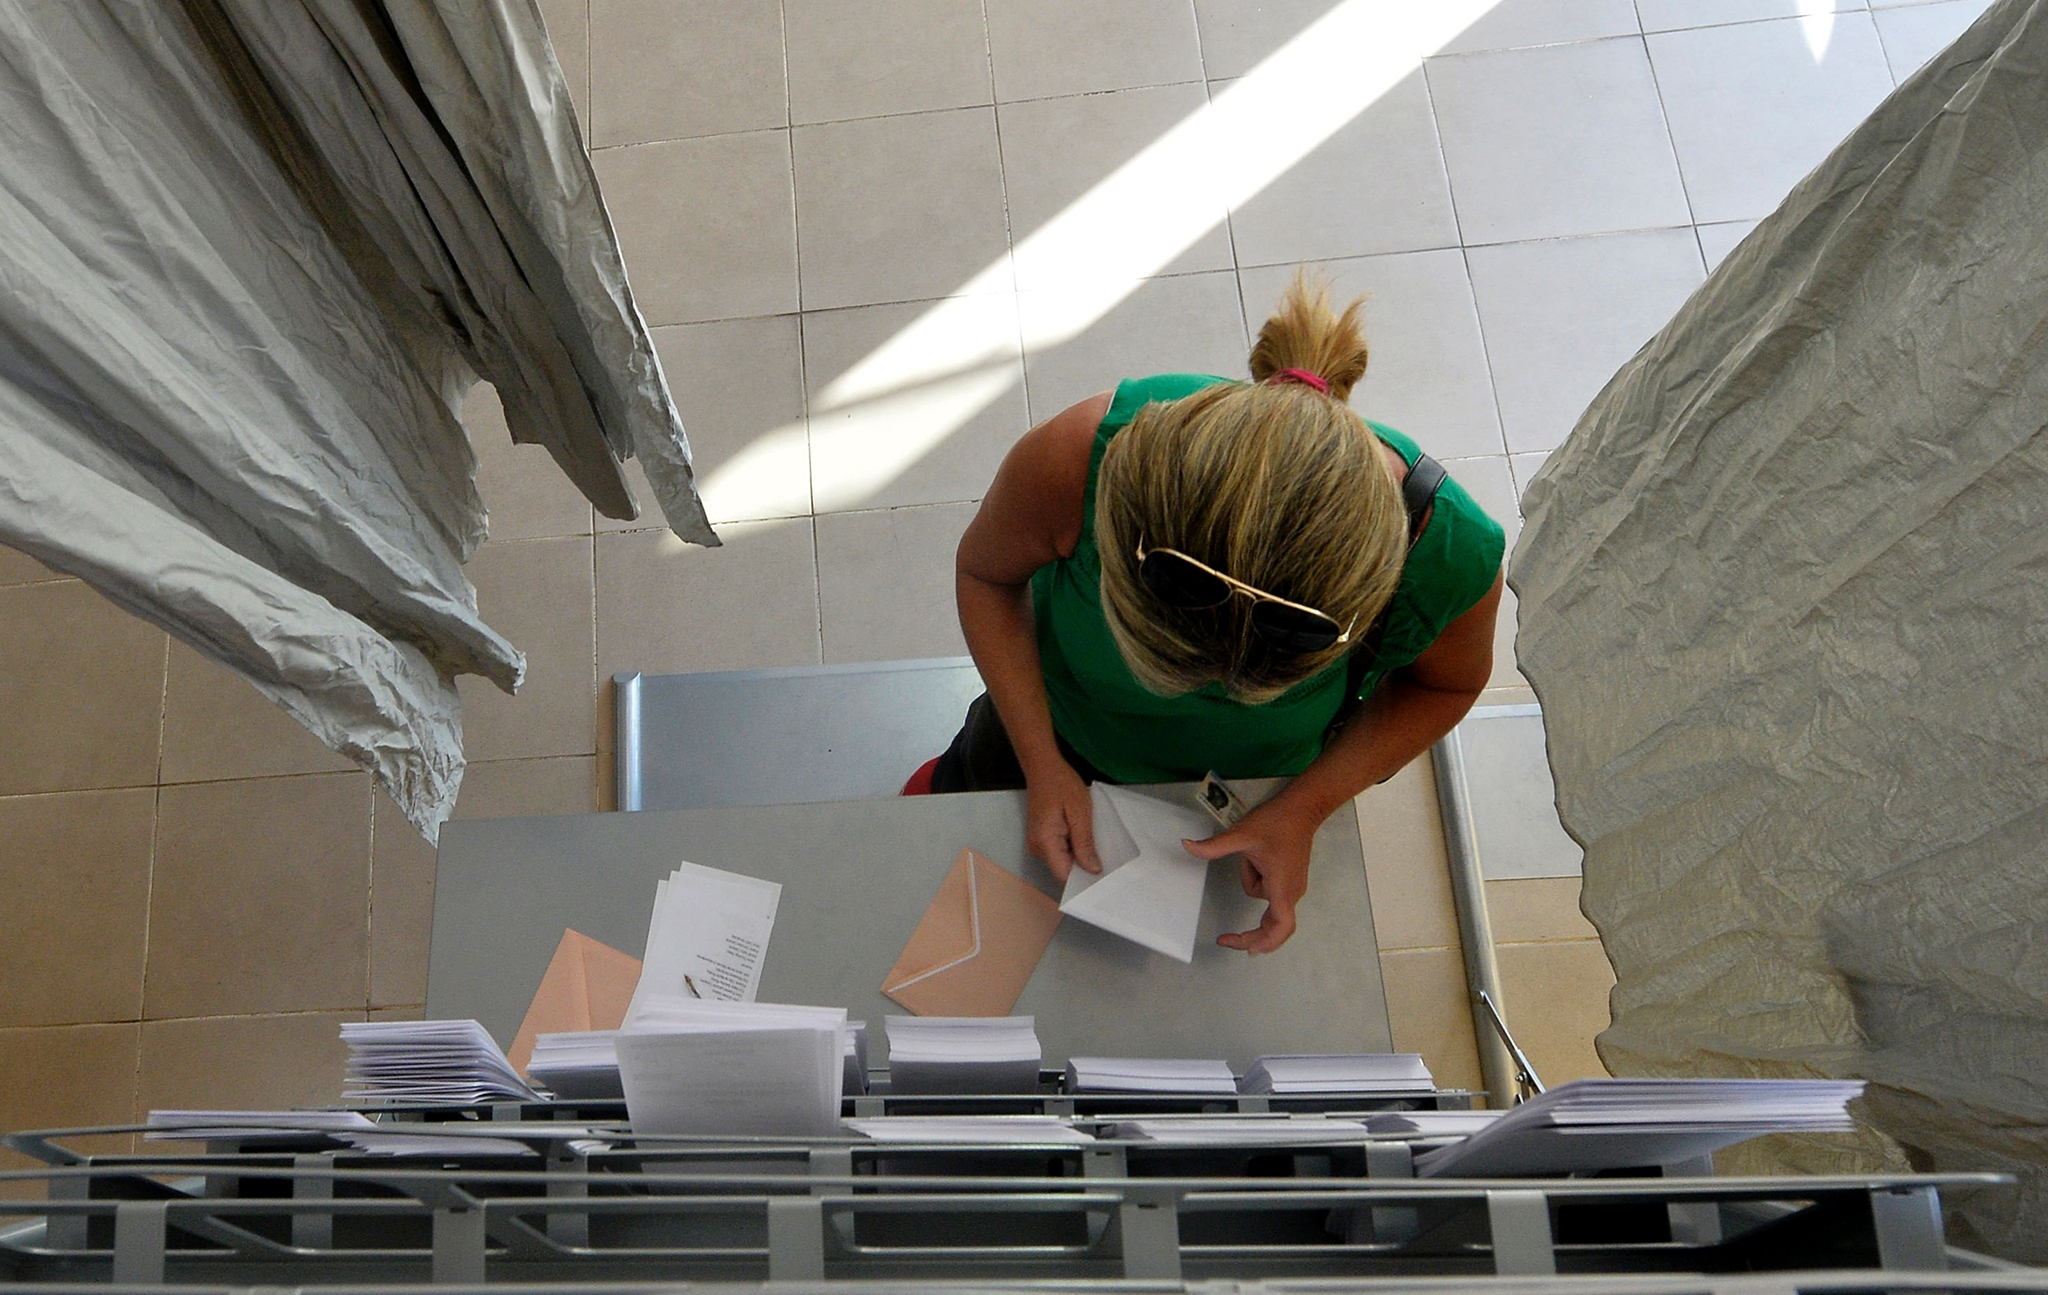 A woman prepares her ballot in a polling booth before voting in Spains general election at the Bernadette college polling station in Moncloa-Aravaca, Madrid